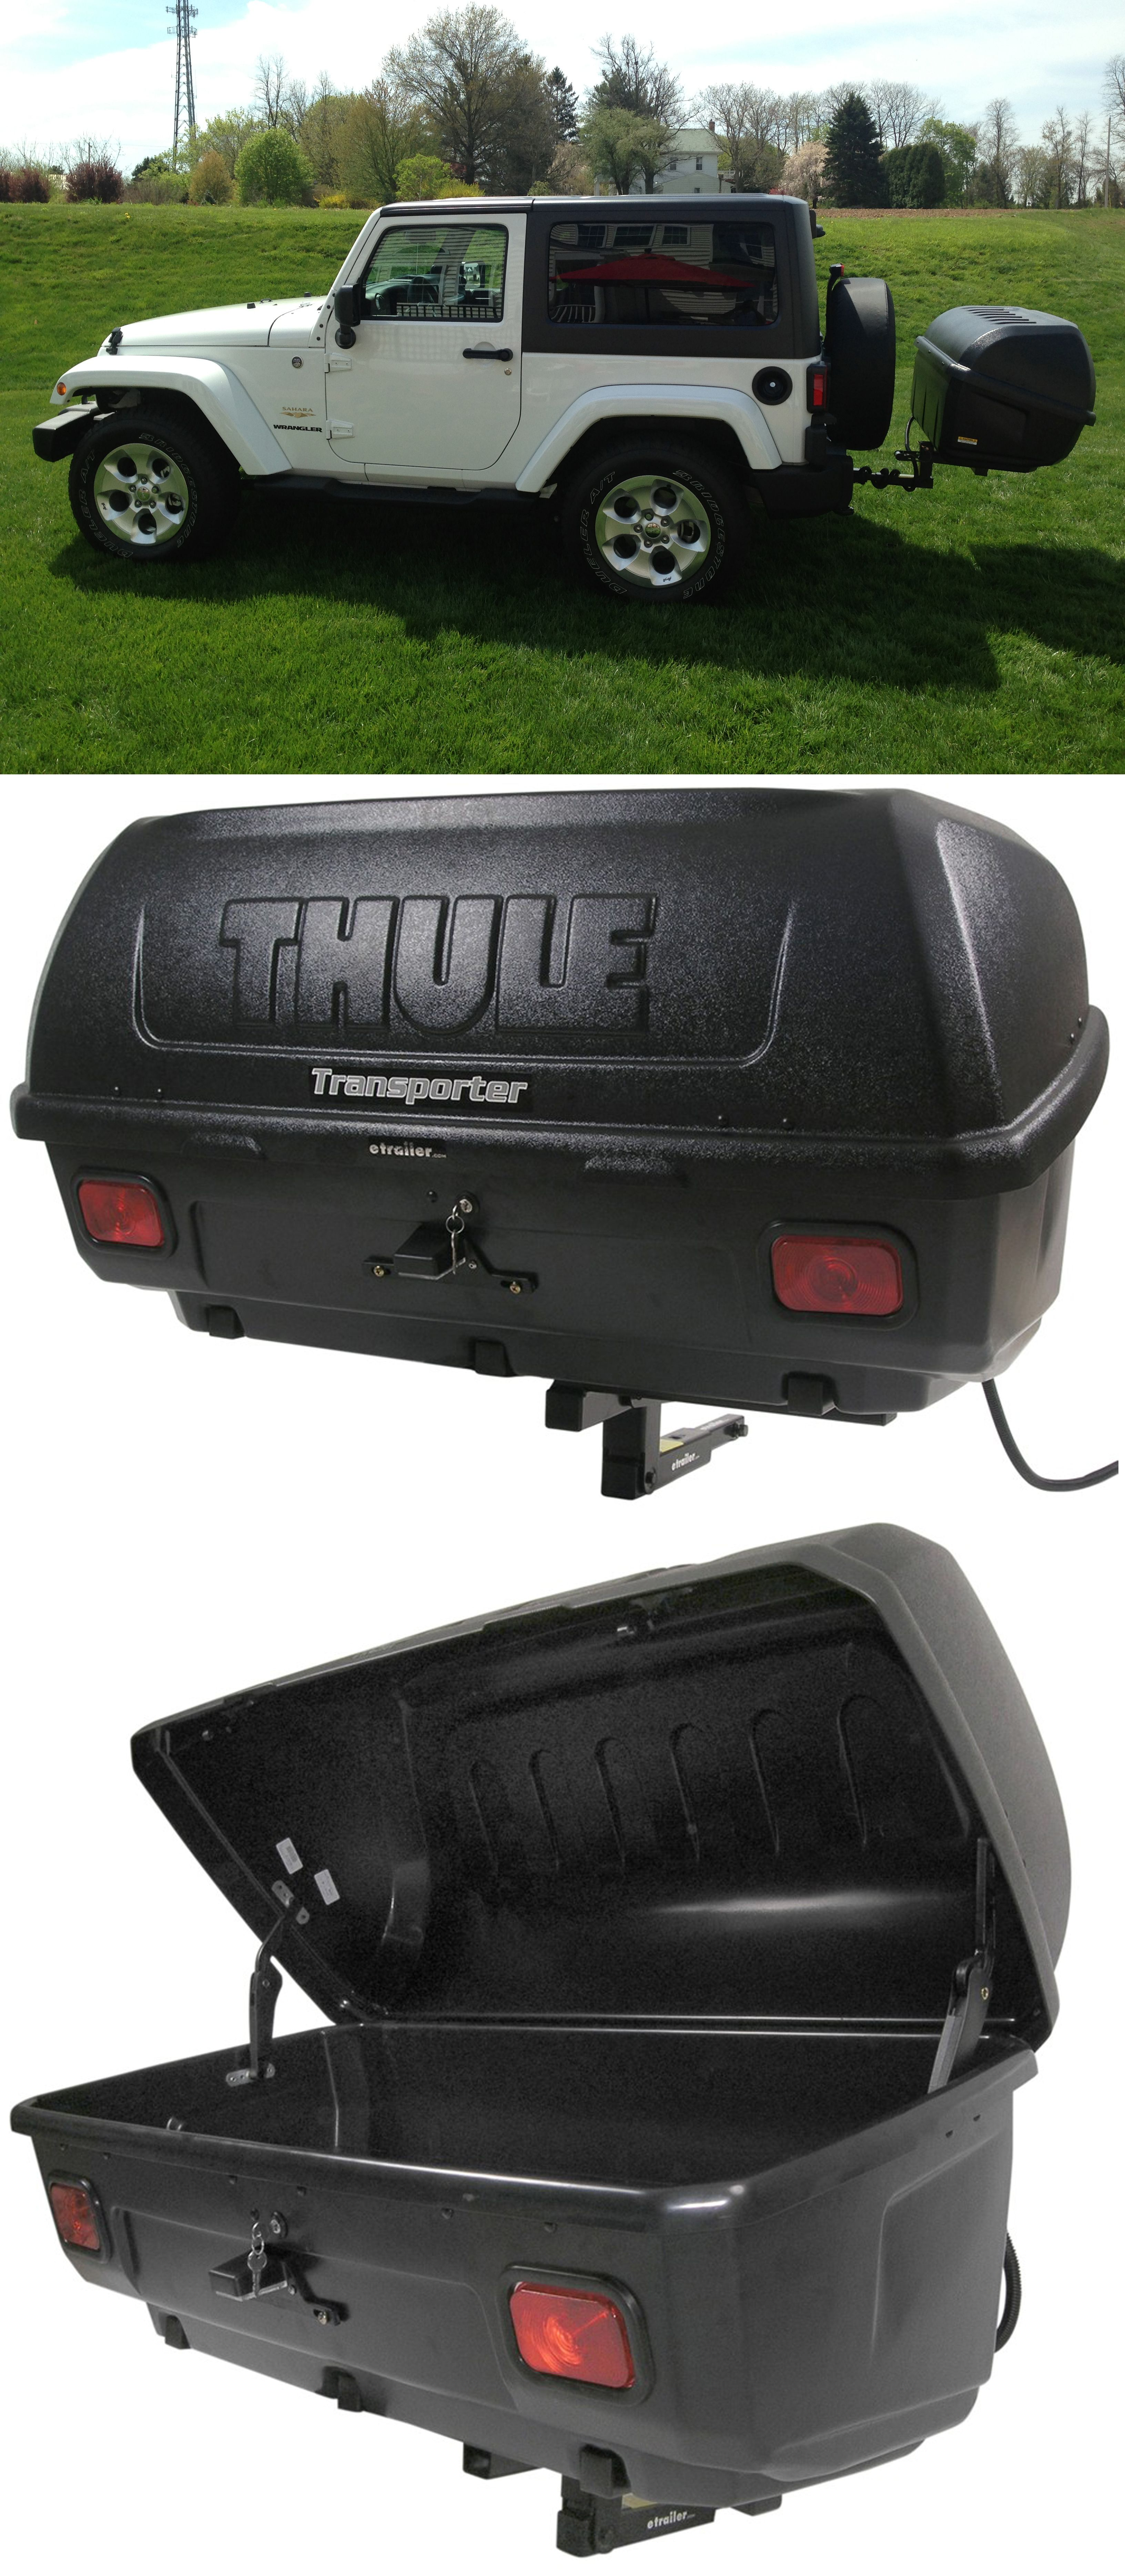 Trailer Hitch Luggage Rack Thule Transporter Combi Hitch Mounted Enclosed Cargo Carrier